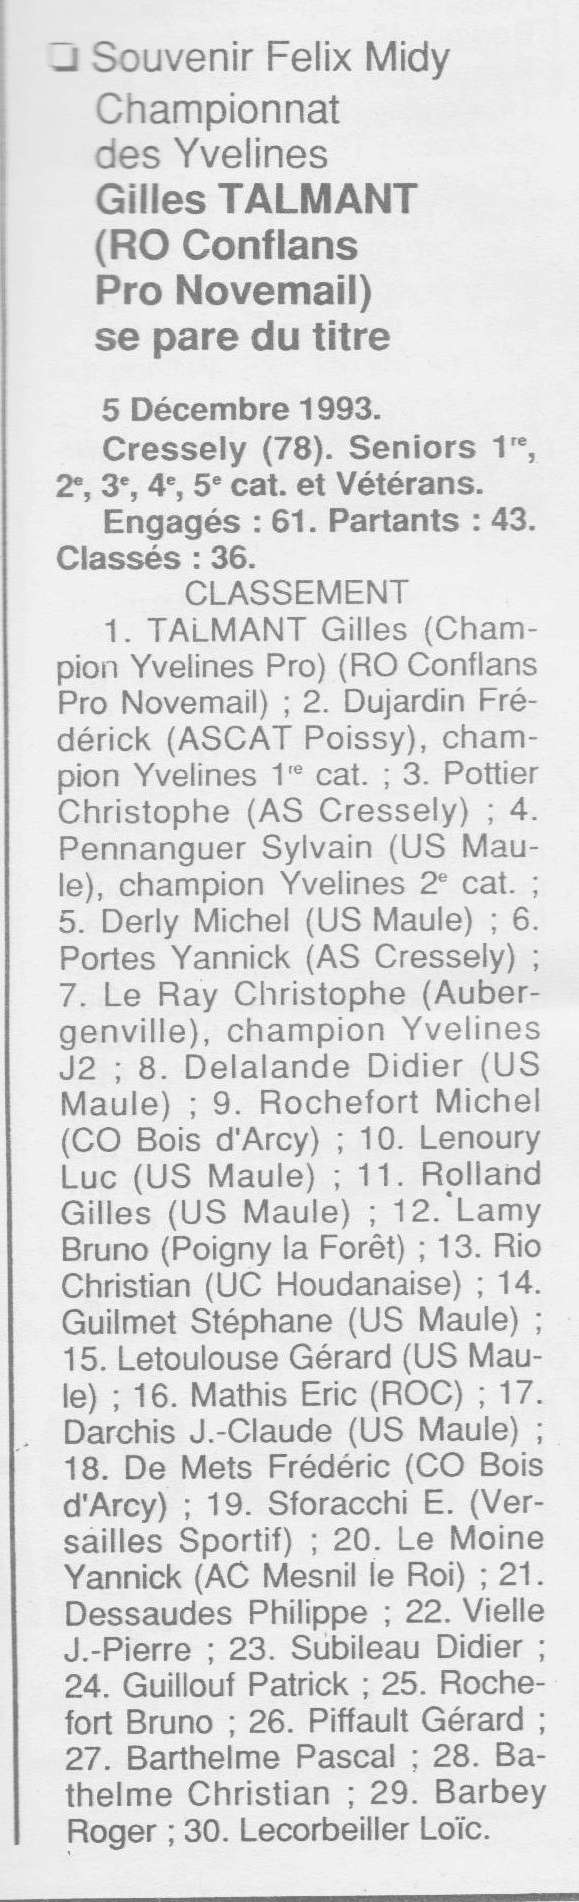 Coureurs et Clubs de Octobre 1993 à Septembre 1996 - Page 2 00142